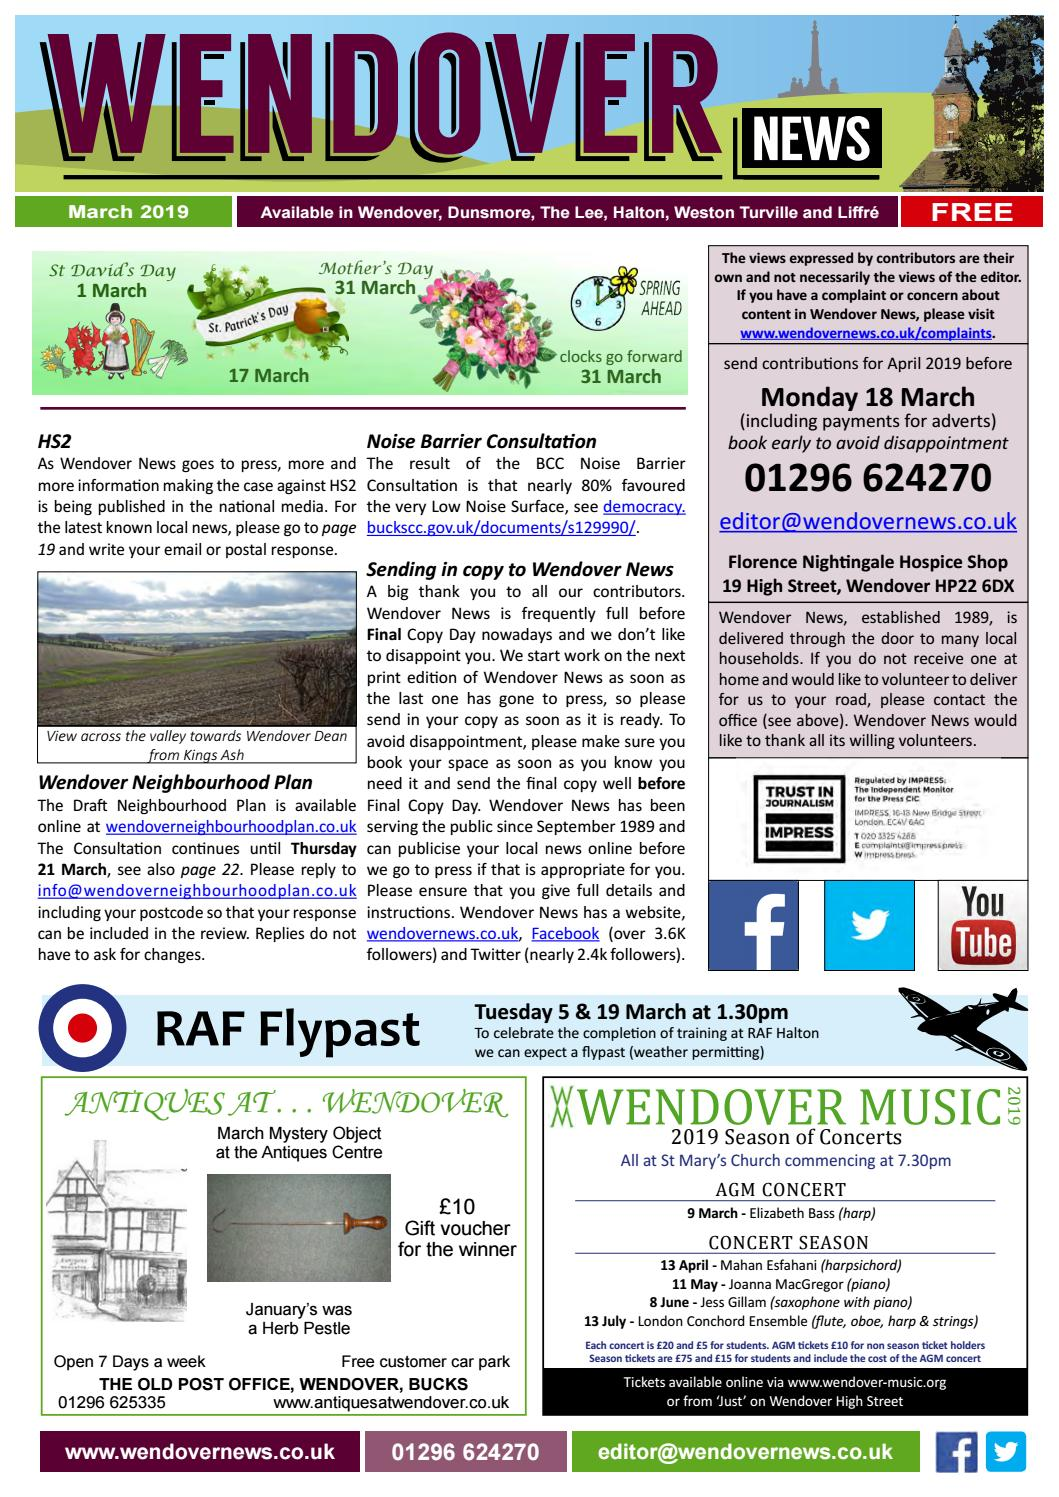 dd7a14c5 Wendover News March 2019 by Wendover News - issuu